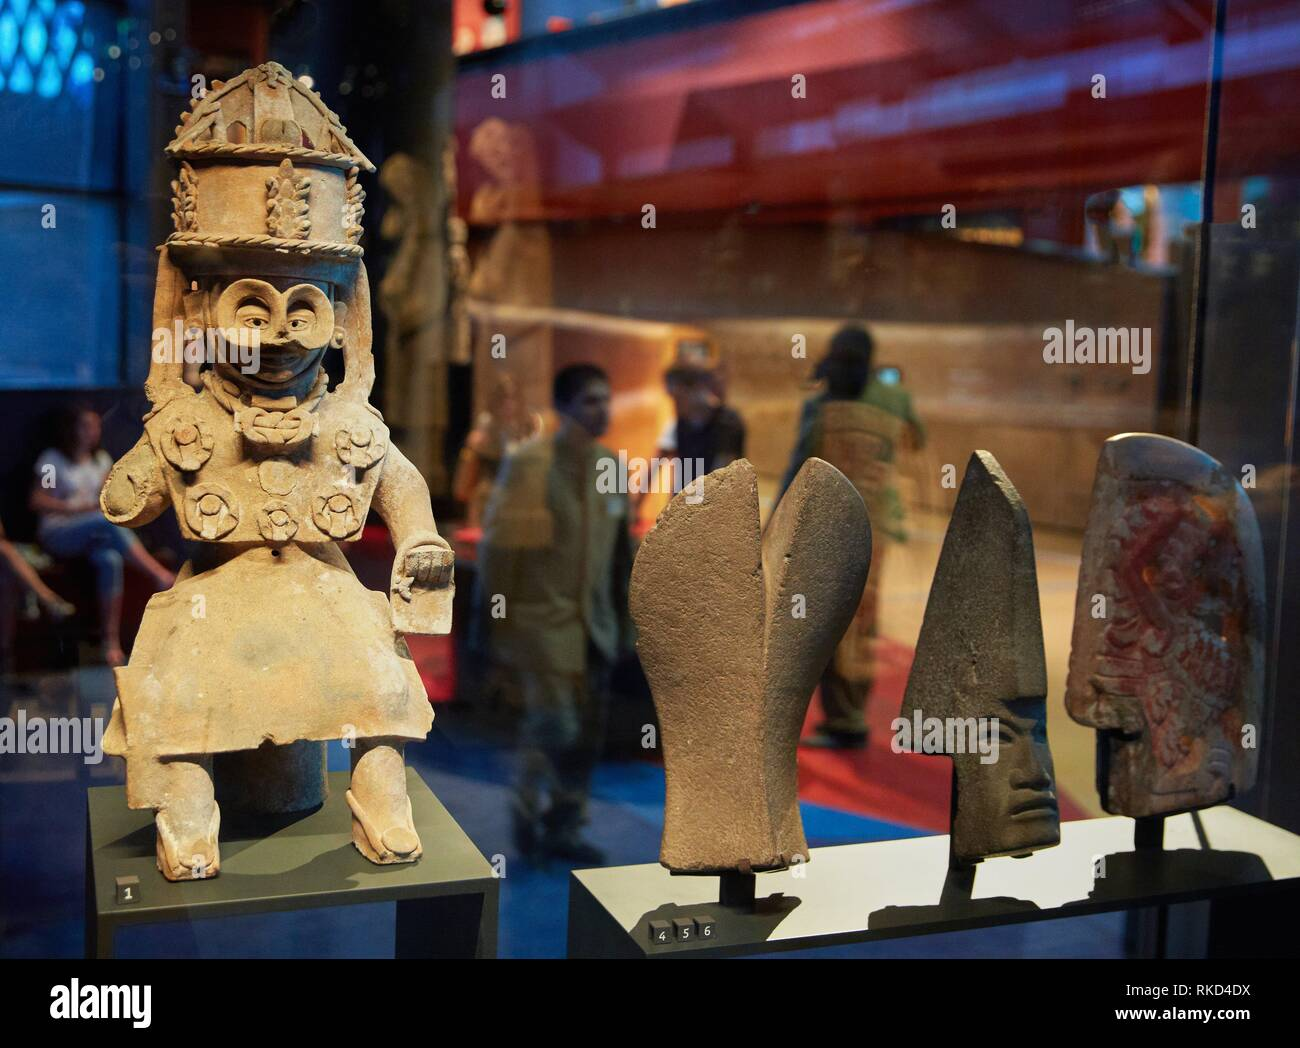 God of rain and atmospheric phenomena. Mexico. Musée du Quai Branly museum, specialised for primitive or tribal arts, architect Jean Nouvel. Paris. - Stock Image